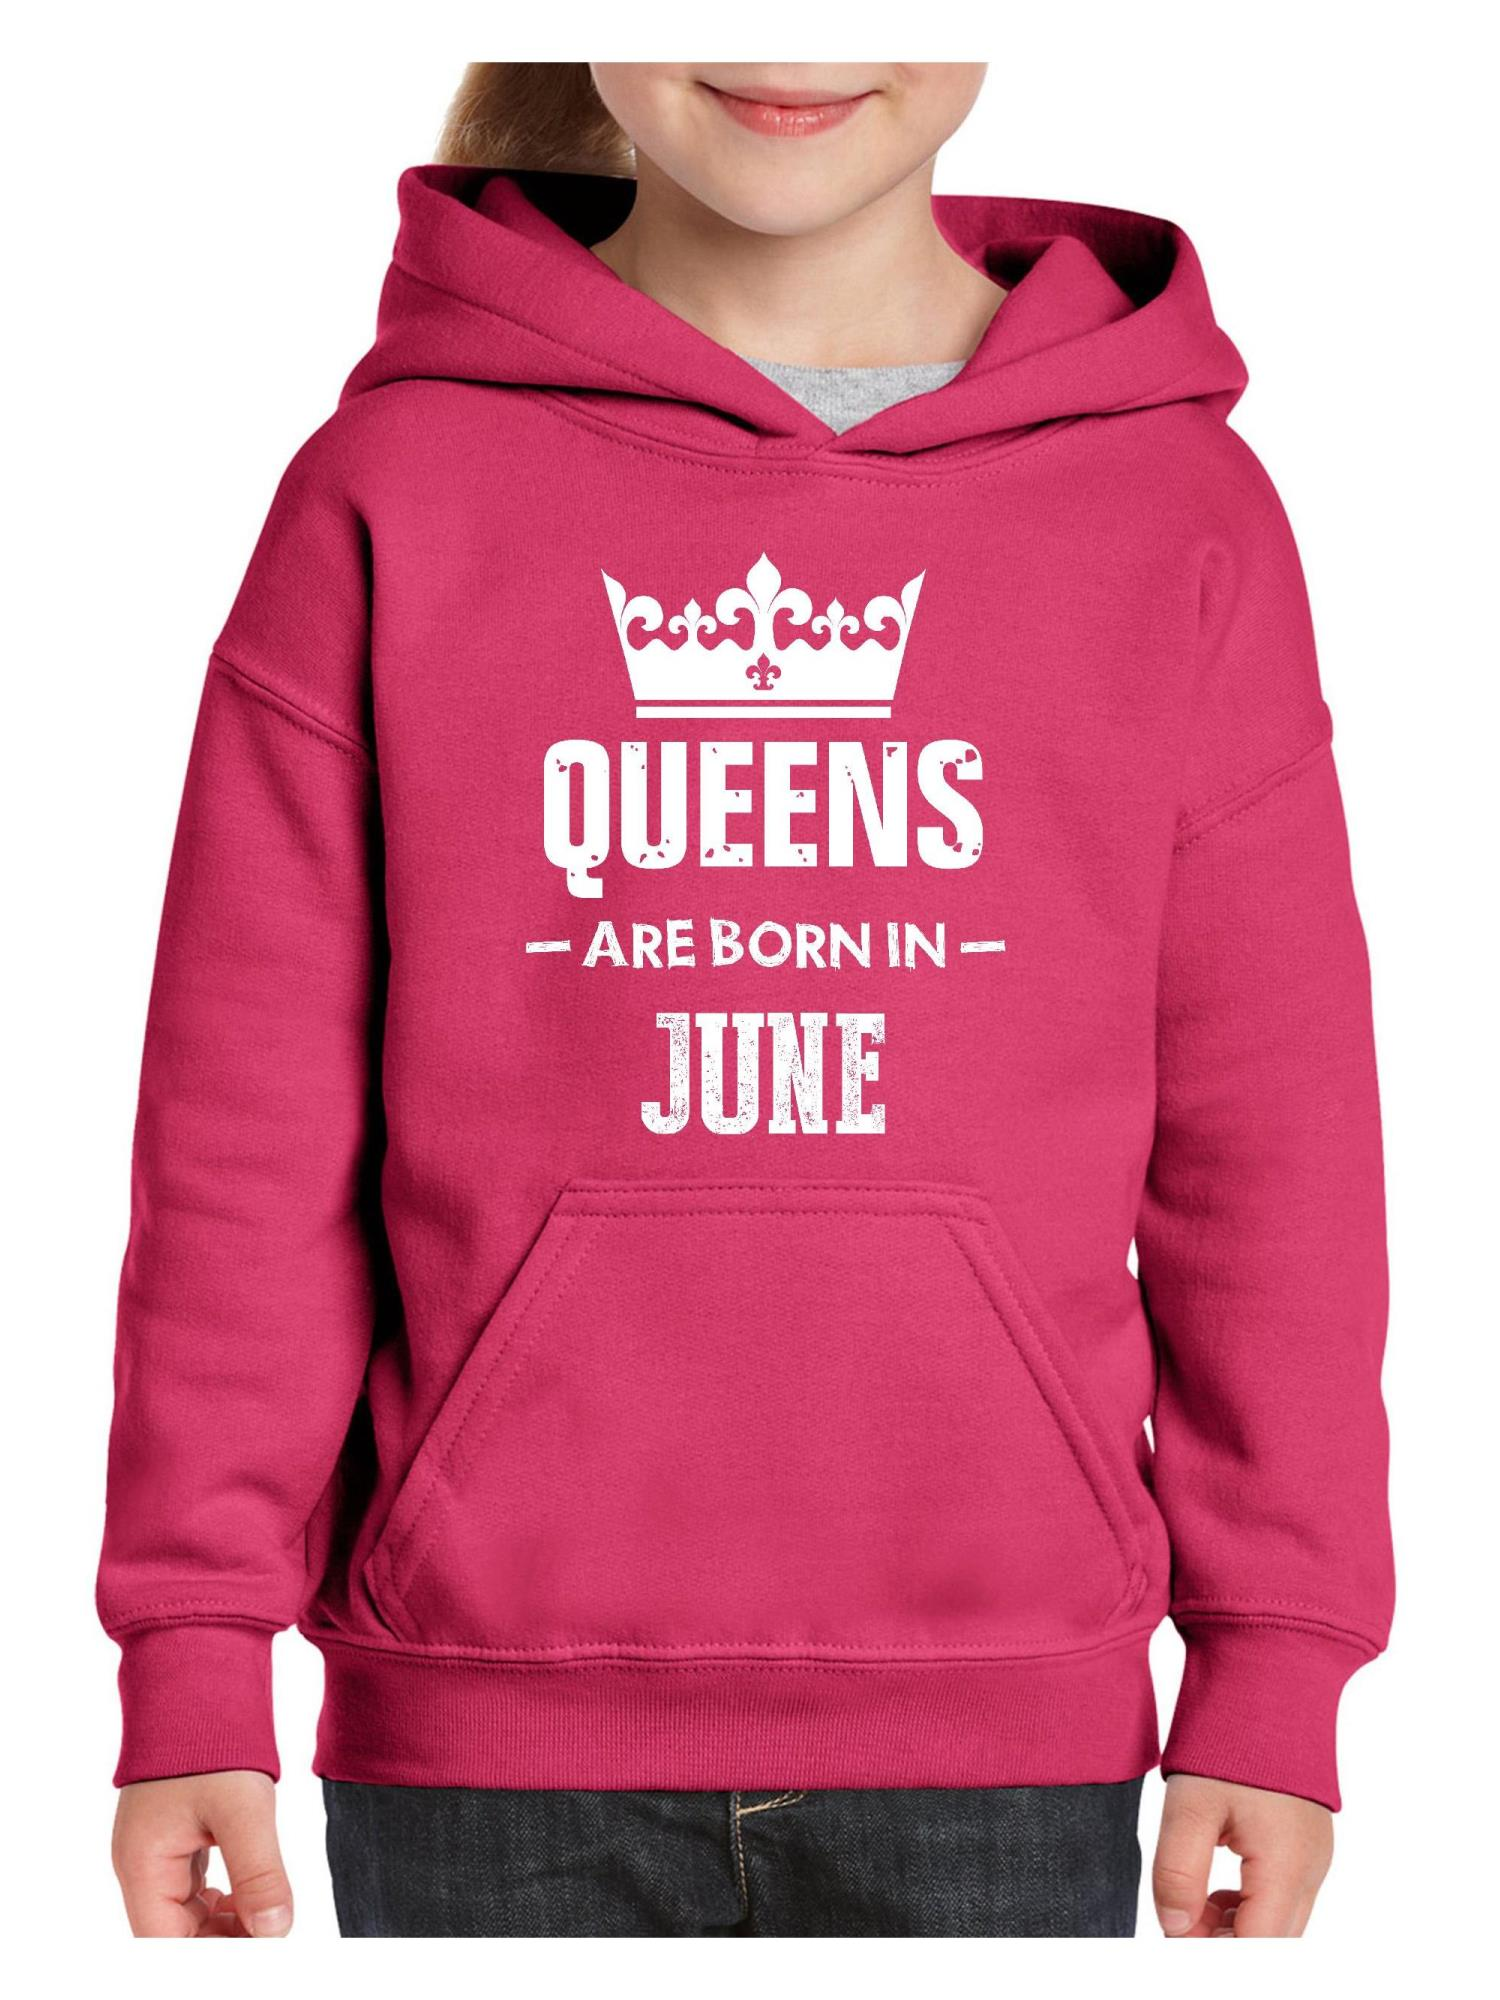 Queens are Born in June Premium Unisex Hoodie with Pocket